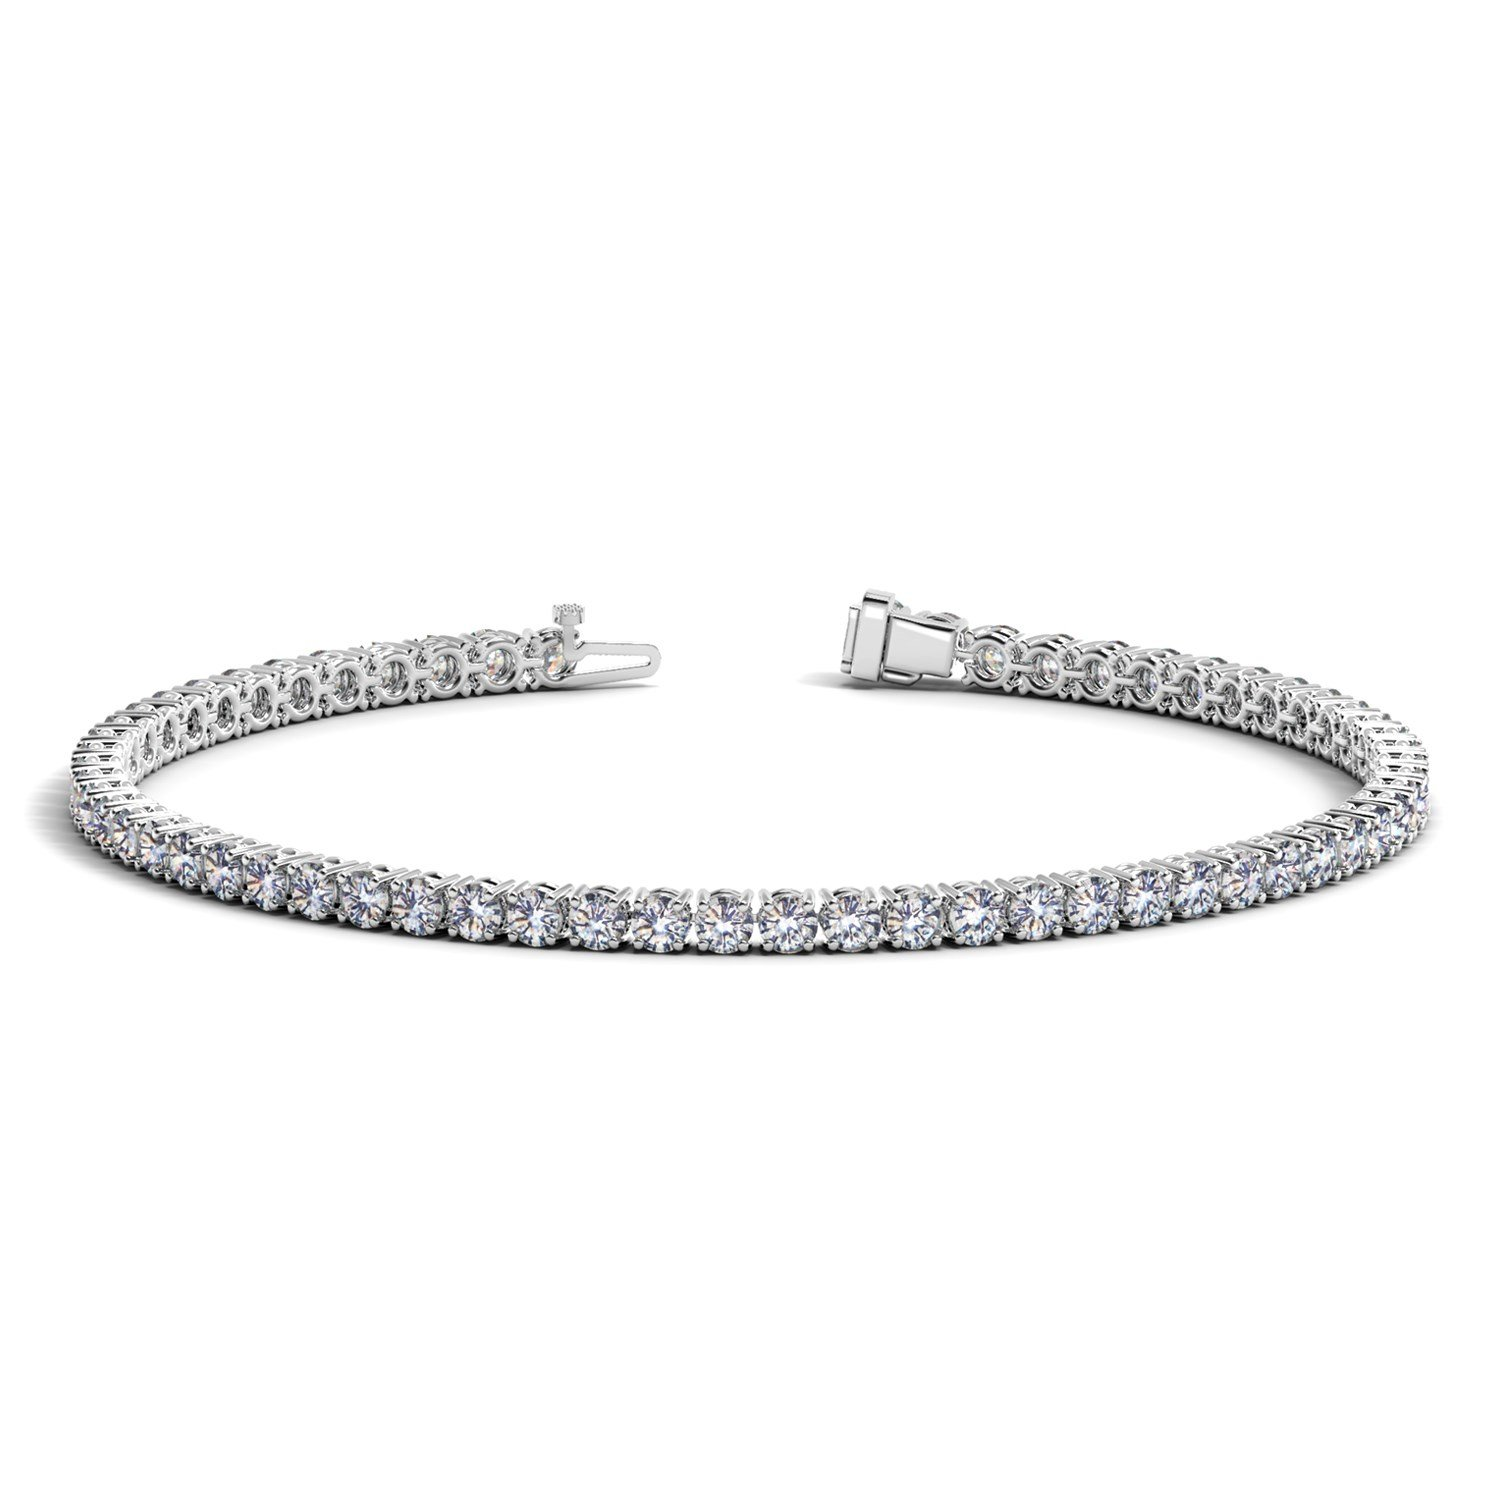 Unique 14K White Gold (10 ct. tw.) Round Diamond Tennis Bracelet 7 inches